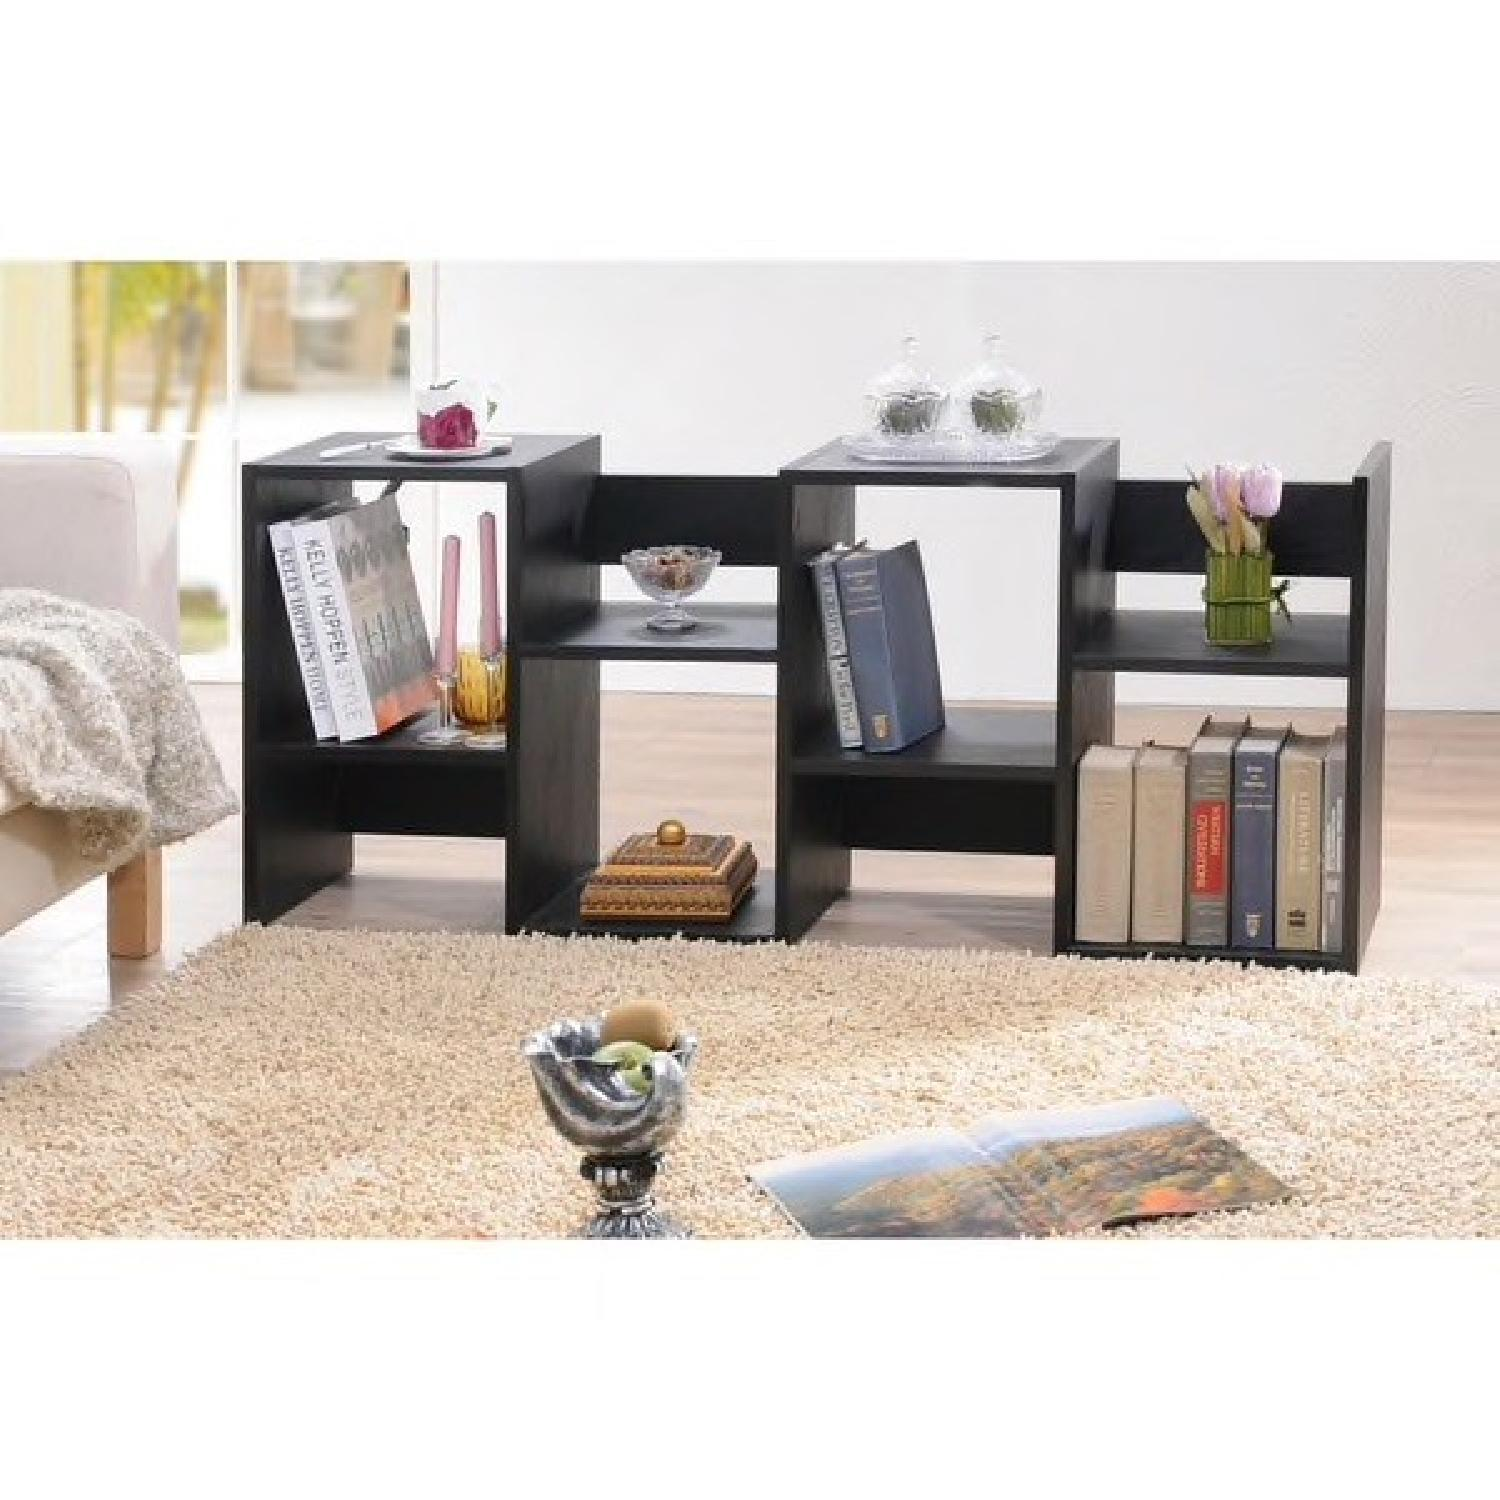 Furniture of America Display Cabinet/Bookcase - image-3